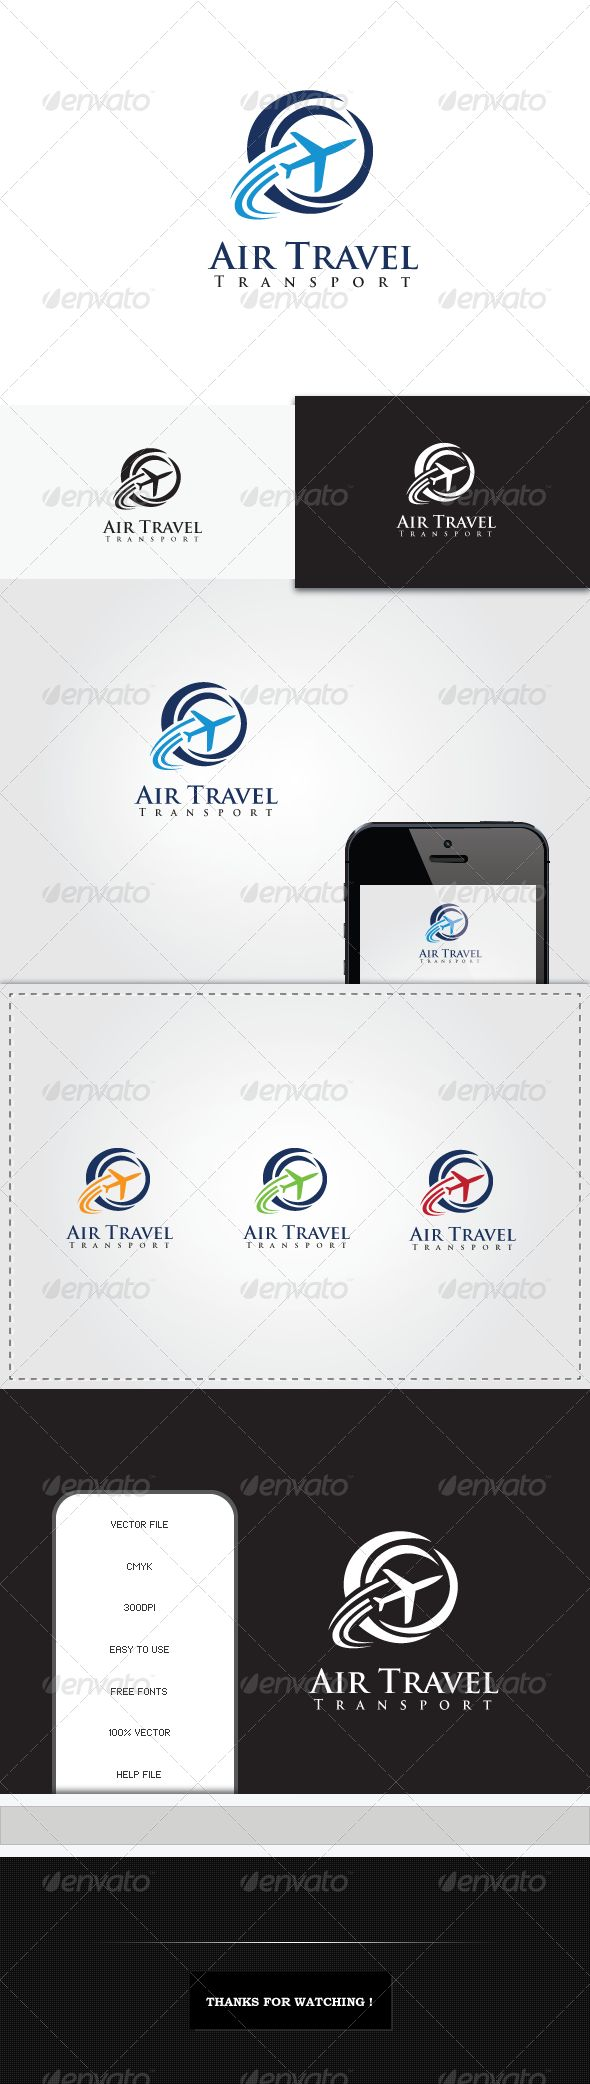 Air Travel Transport — Vector EPS #flight #trip • Available here → https://graphicriver.net/item/air-travel-transport/5333980?ref=pxcr